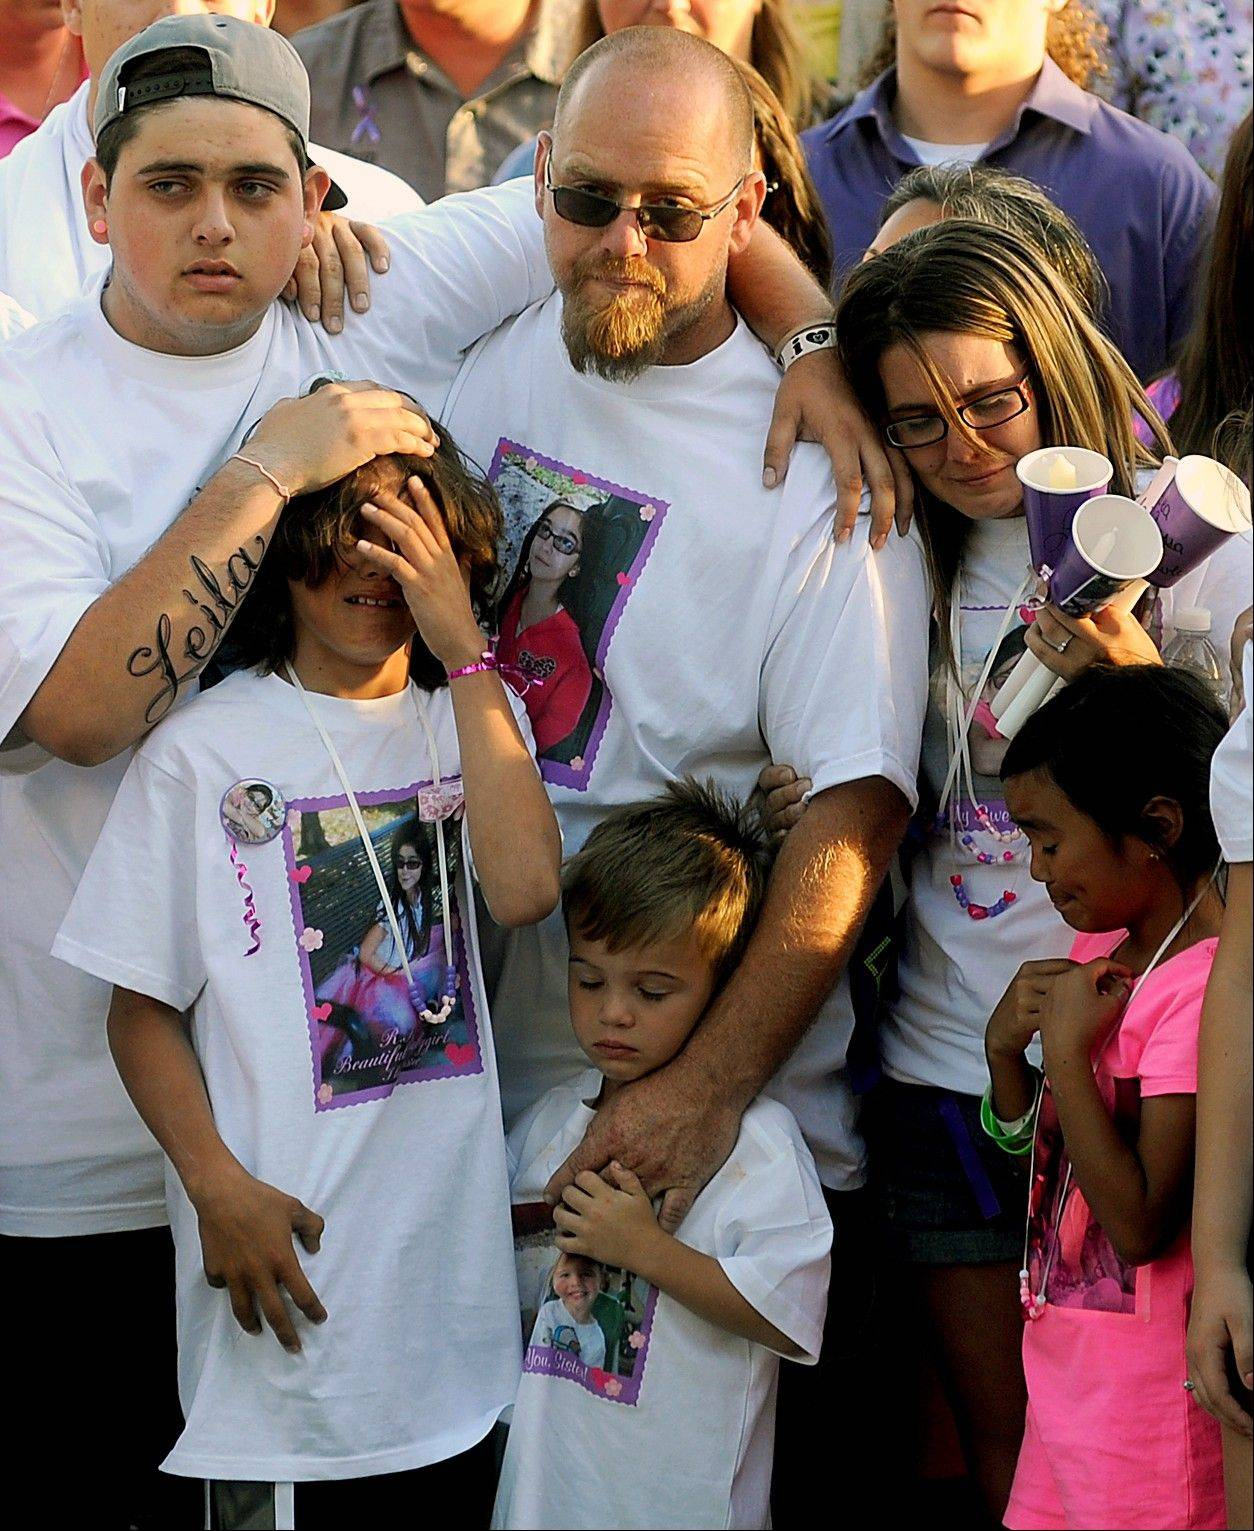 The family of slain 8-year-old girl Leila Fowler. Leila�s father, Barney Fowler, center, stands with Leila�s mother Crystal Walters, right, at his shoulder. Fowler says he believes 12-year-old son, who was arrested in the stabbing death of his 8-year-old sister, is innocent until he is shown evidence that proves otherwise.